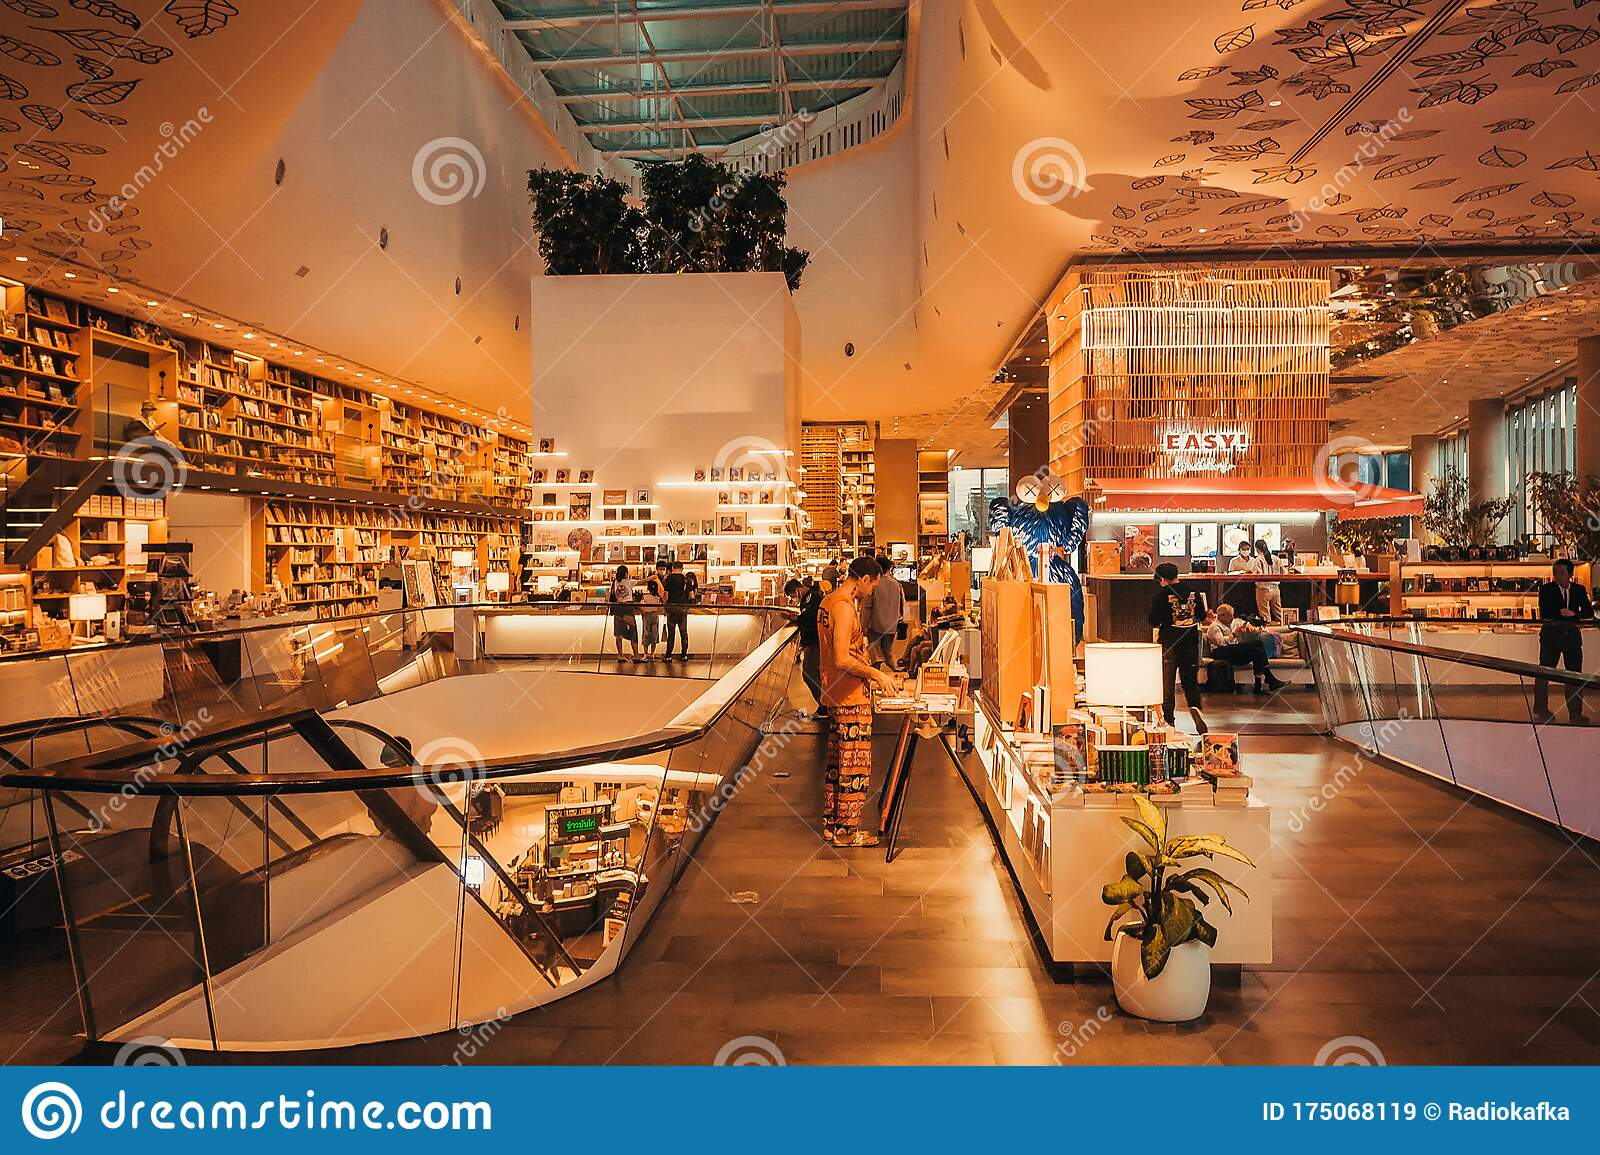 Customers Of The Modern Bookstore Inside The Huge Shopping Mall With Cafe Bookshelves Entertainment Editorial Stock Image Image Of Interest Decoration 175068119